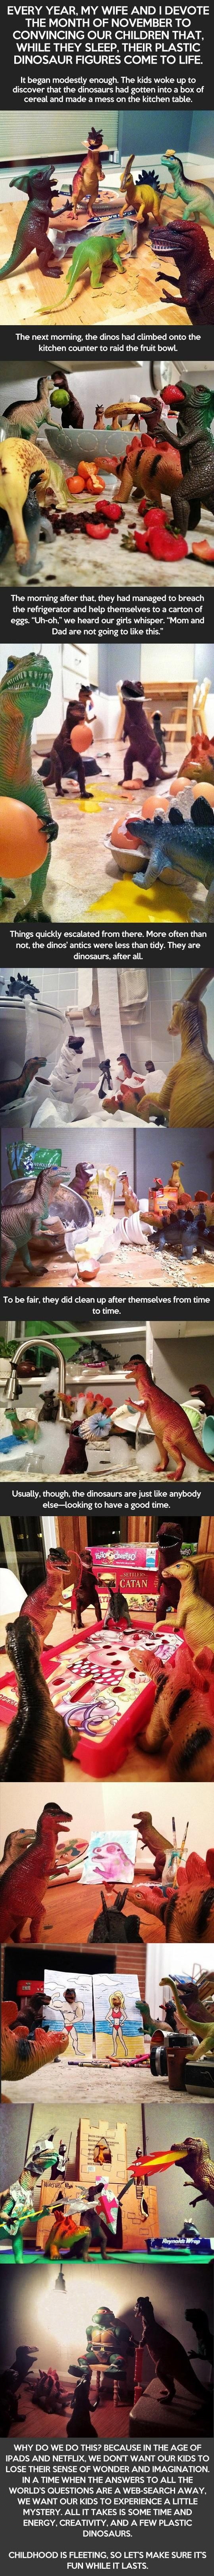 In trying to encourage wonder, amazement and mystery in their kids during this age of internet and iPads, these parents convinced their kids that Dinosaurs had wreaked havoc on their house. (Look out Easter Bunny, Toothfairy and Santa Claus!) My favorite is where they have a ninja turtle held captive.